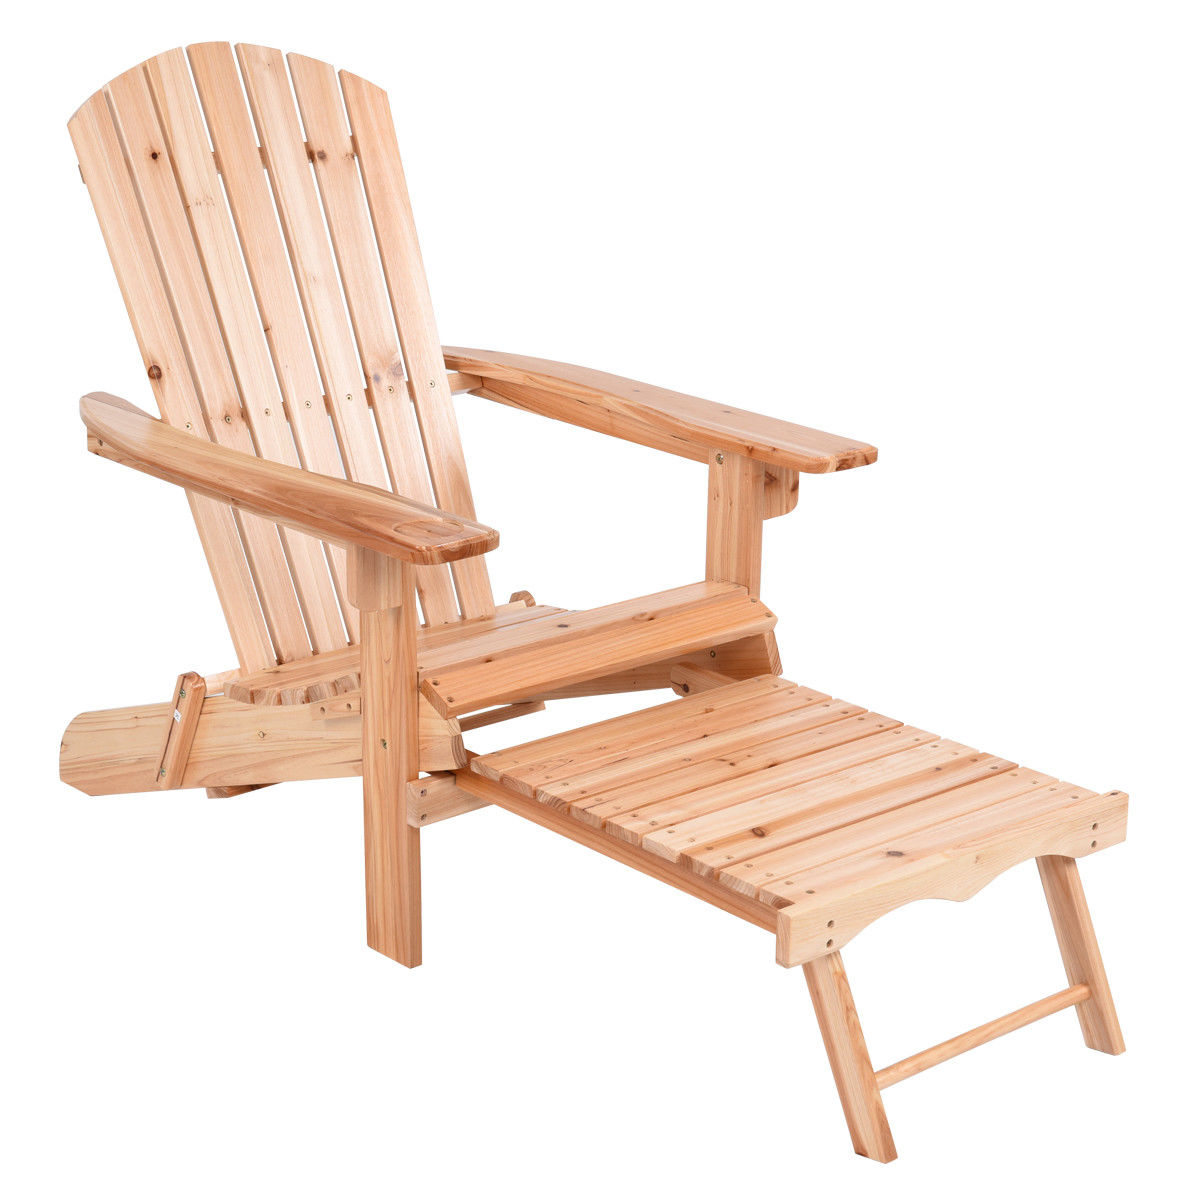 Giantex Foldable Adirondack Chair Wood with Removable Ottoman Patio Deck Garden Chairs Modern Outdoor Furniture HW56973 ...